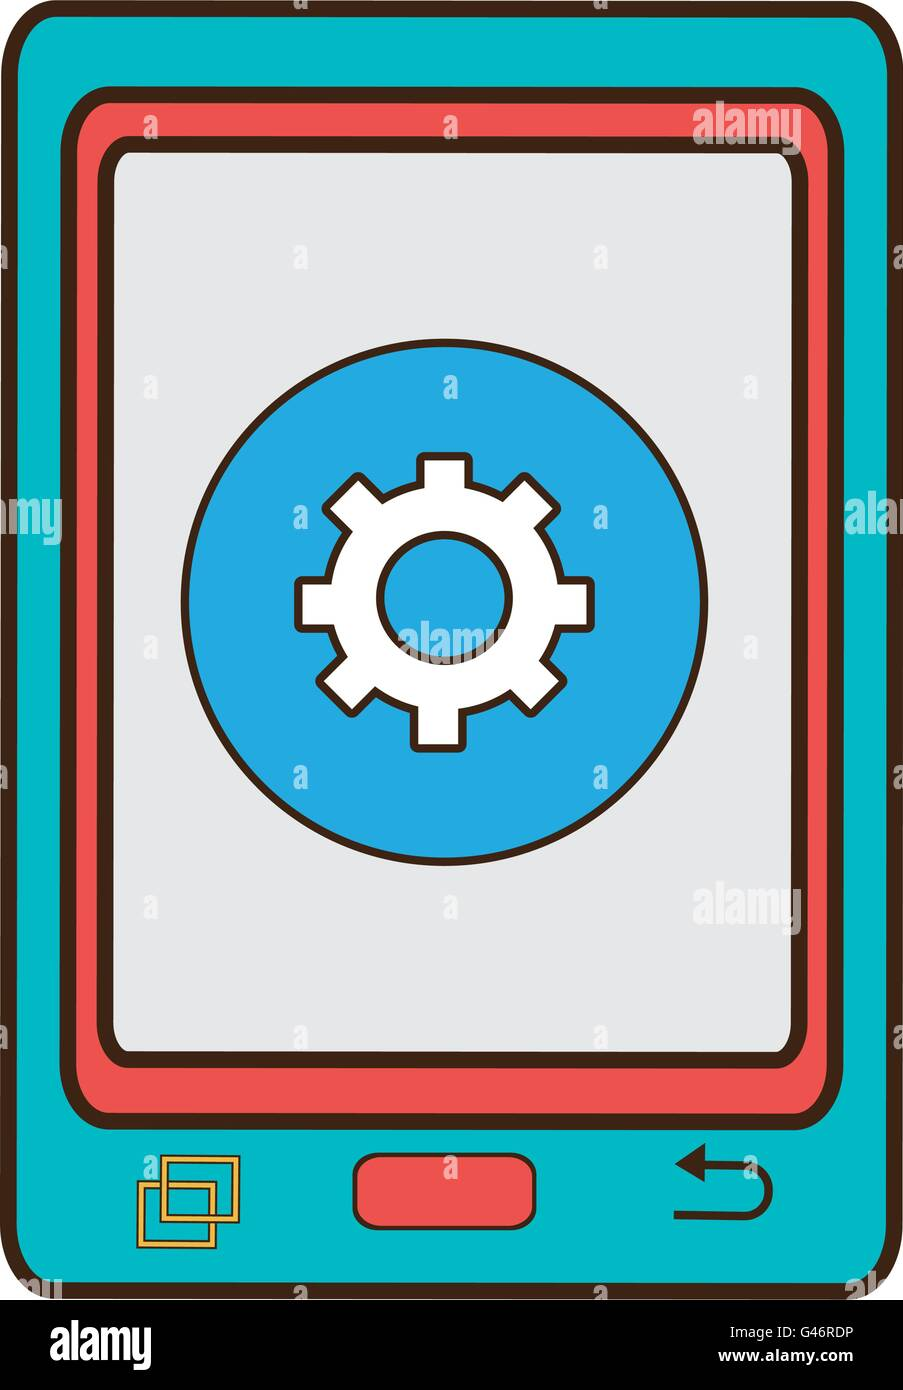 blue electronic device with media icon on the screen,vector grap - Stock Image